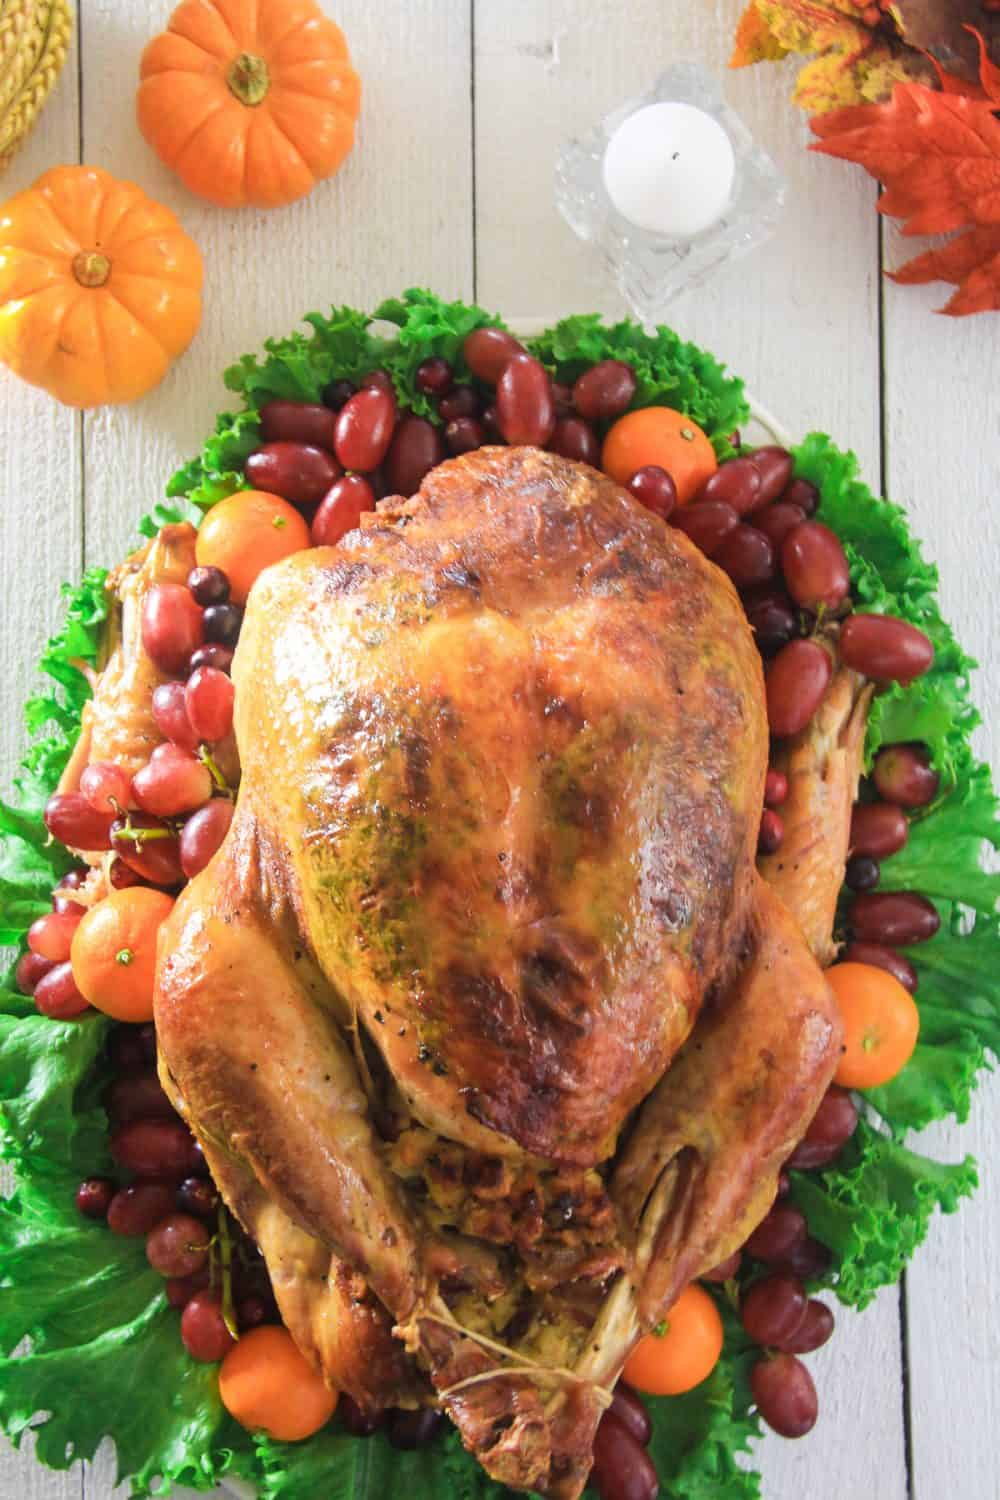 an overhead image of a whole roasted turkey on a white wooden background with grapes, pumpkins and Mandarins around it